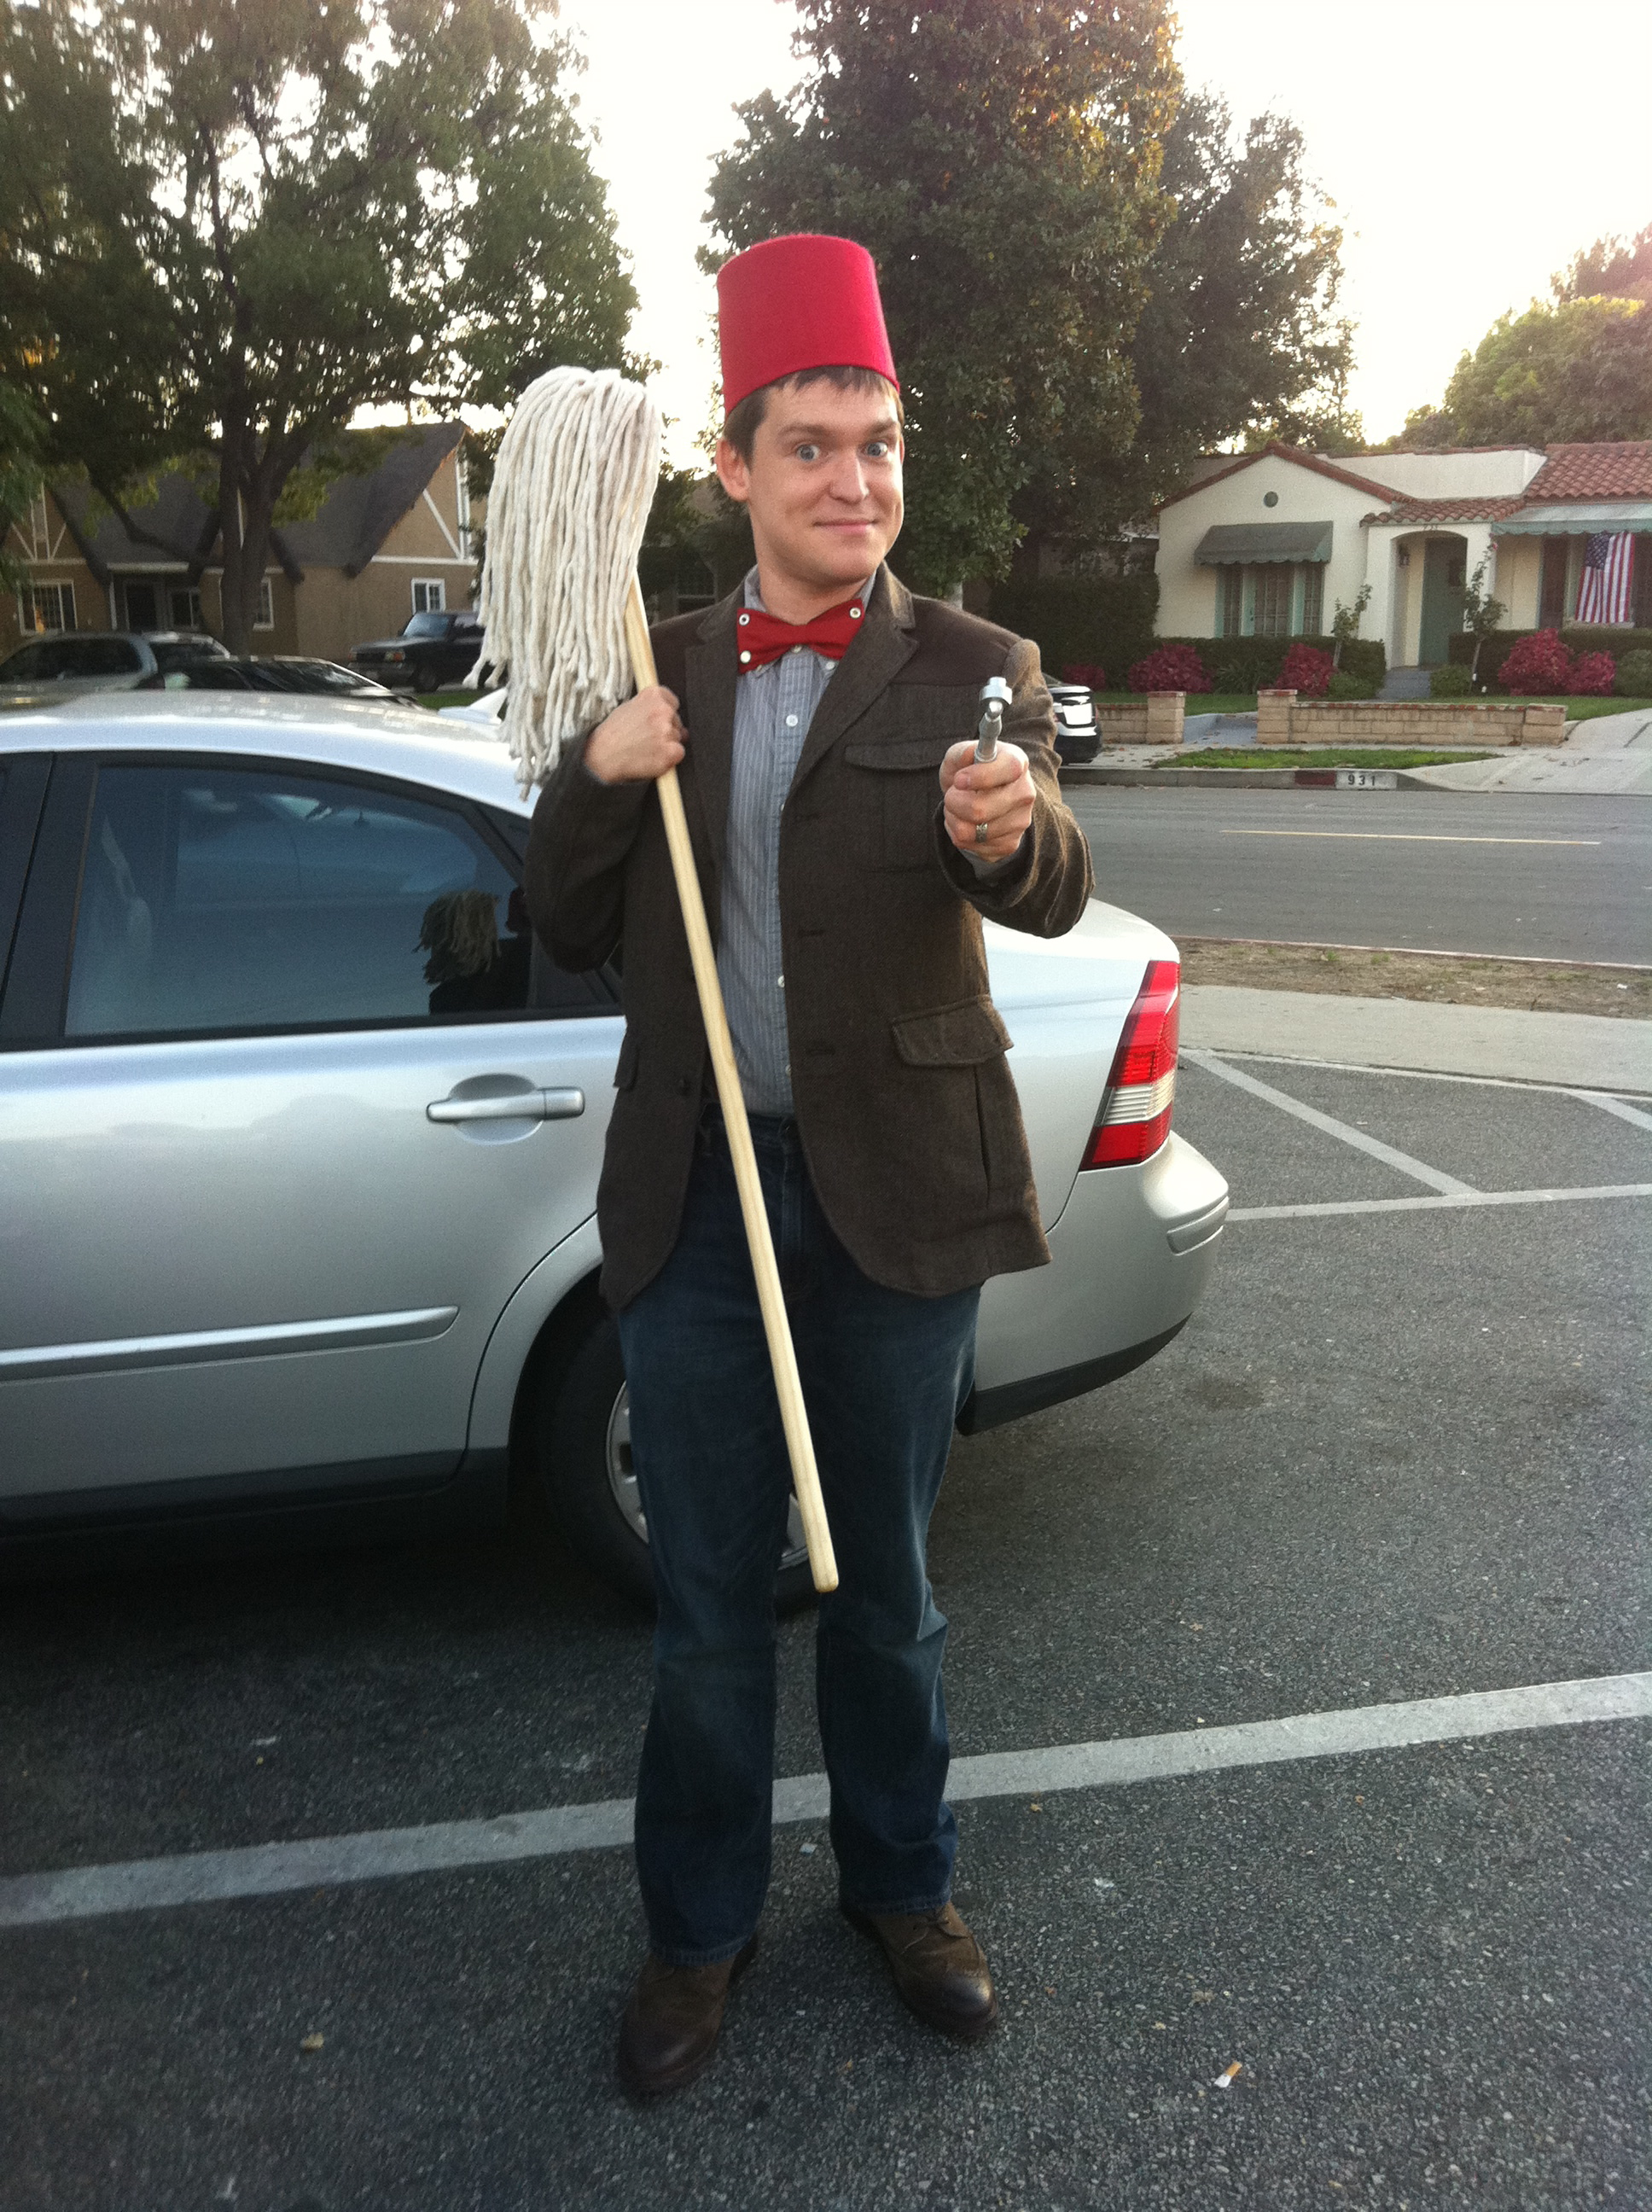 Fiercely Loving Halloween – [Gal About Town: Fashion and Travel at Your Fingertips - Halloween 2012]